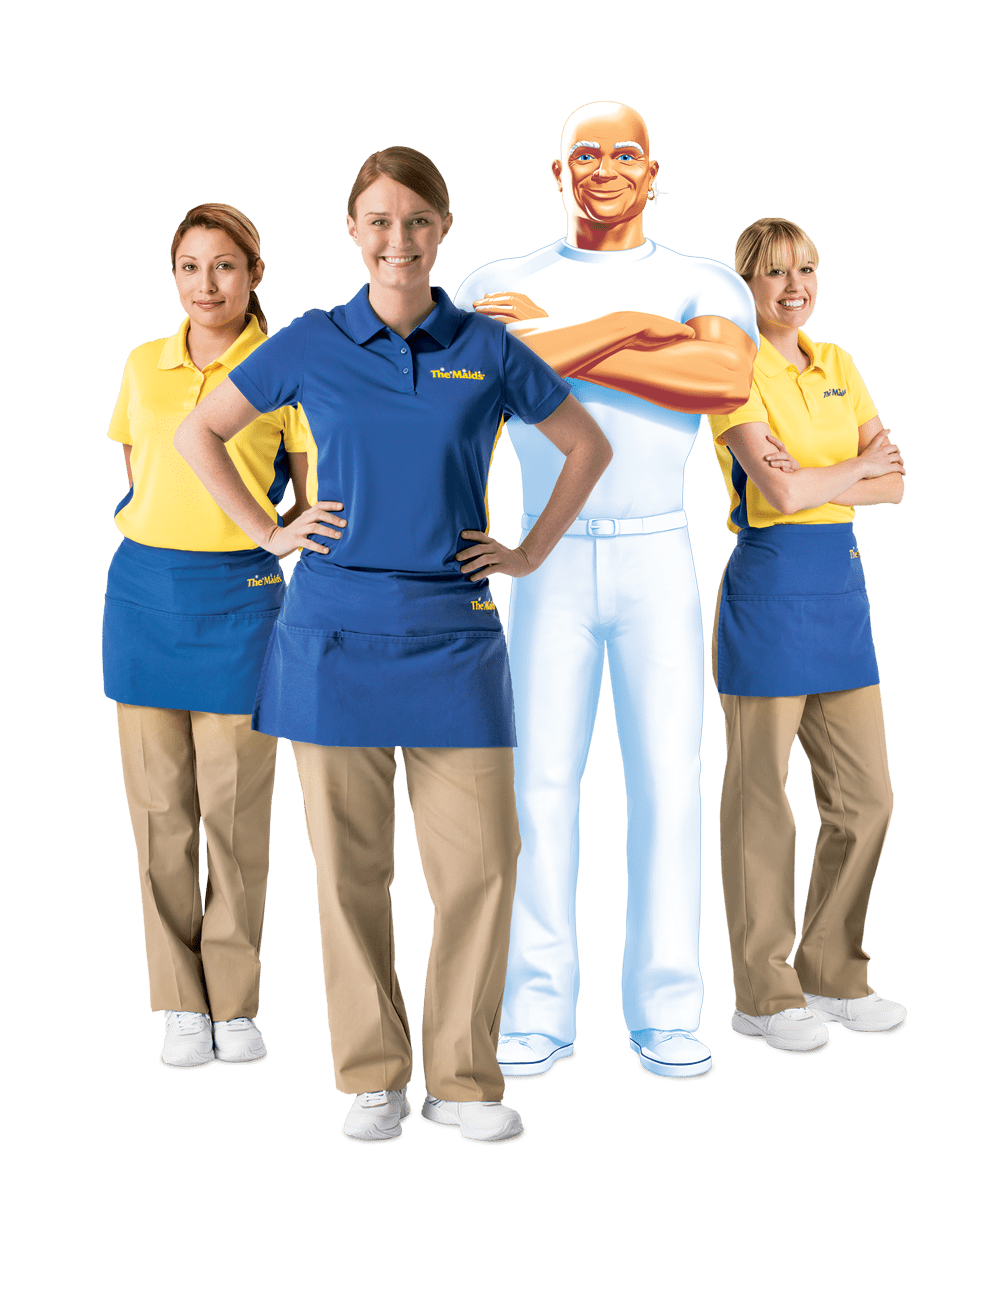 The Maids House Cleaning - The Maids in North Atlanta Home Cleaning